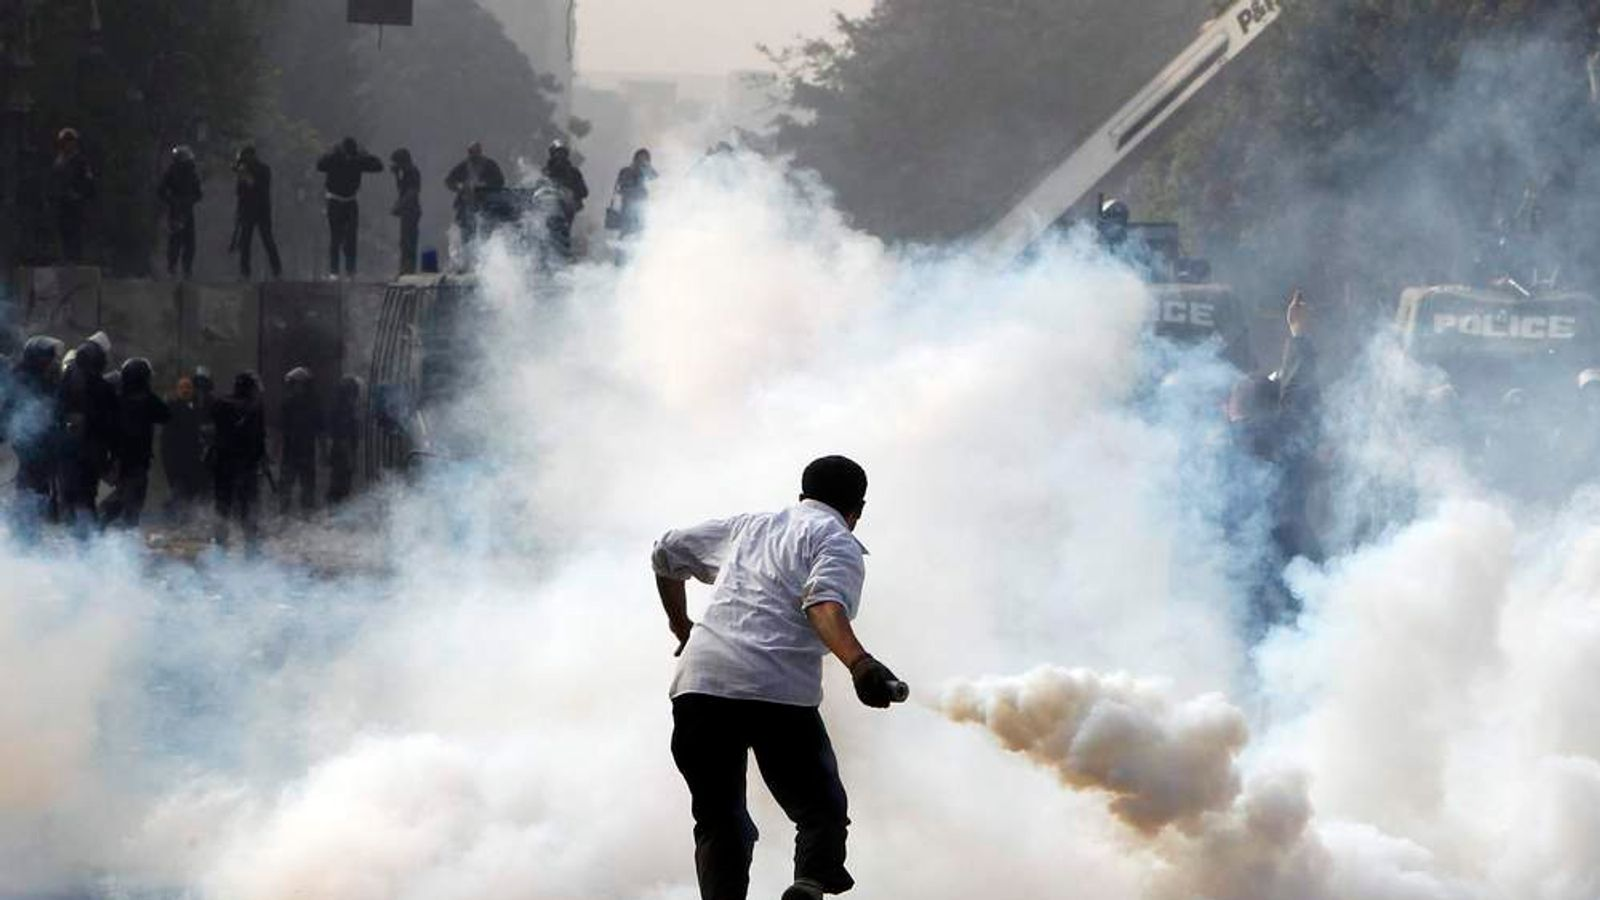 A protester returns a tear gas canister to the riot police in Cairo